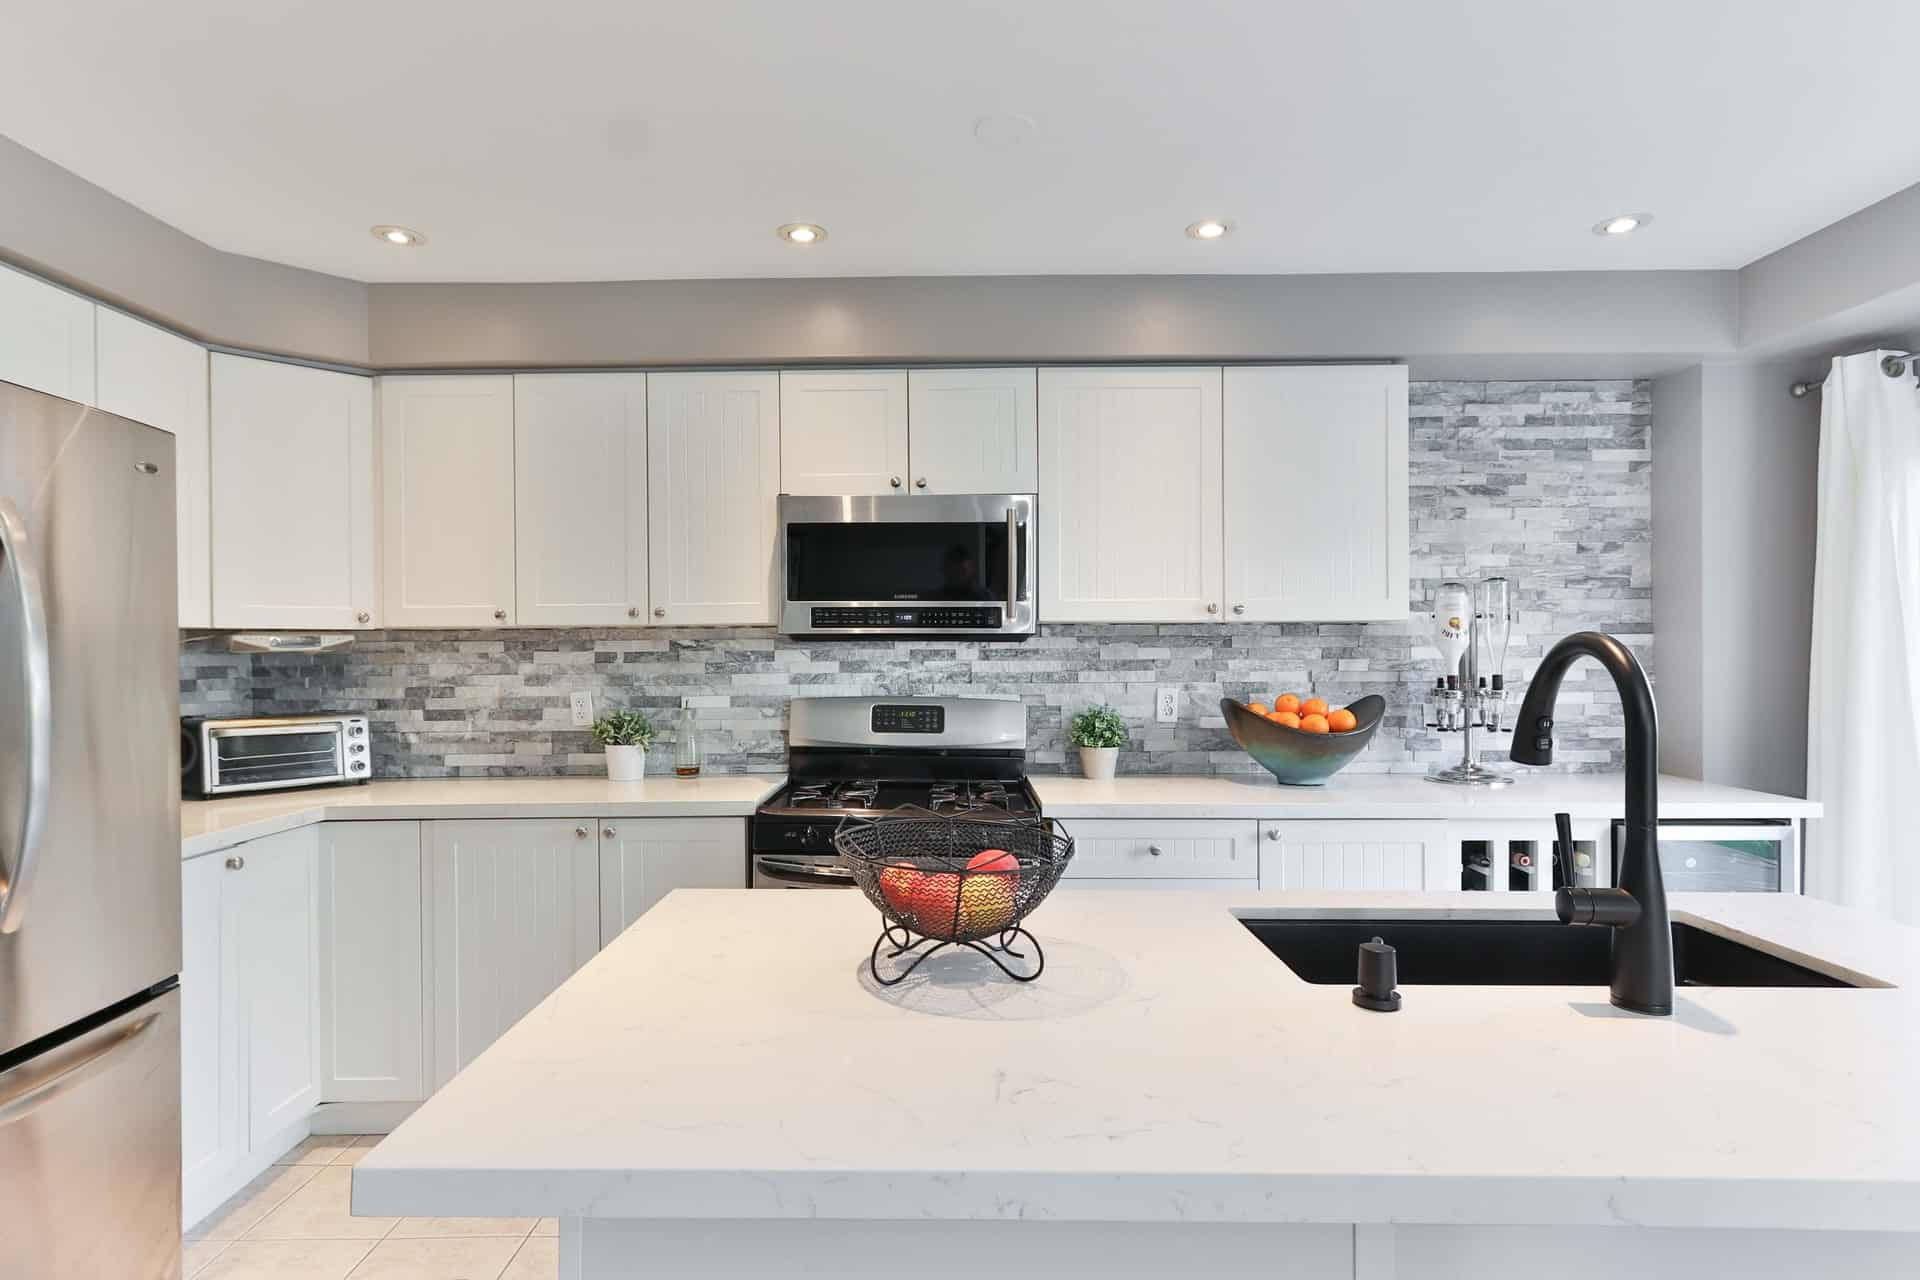 A black faucet made from the USA in a white sleek kitchen